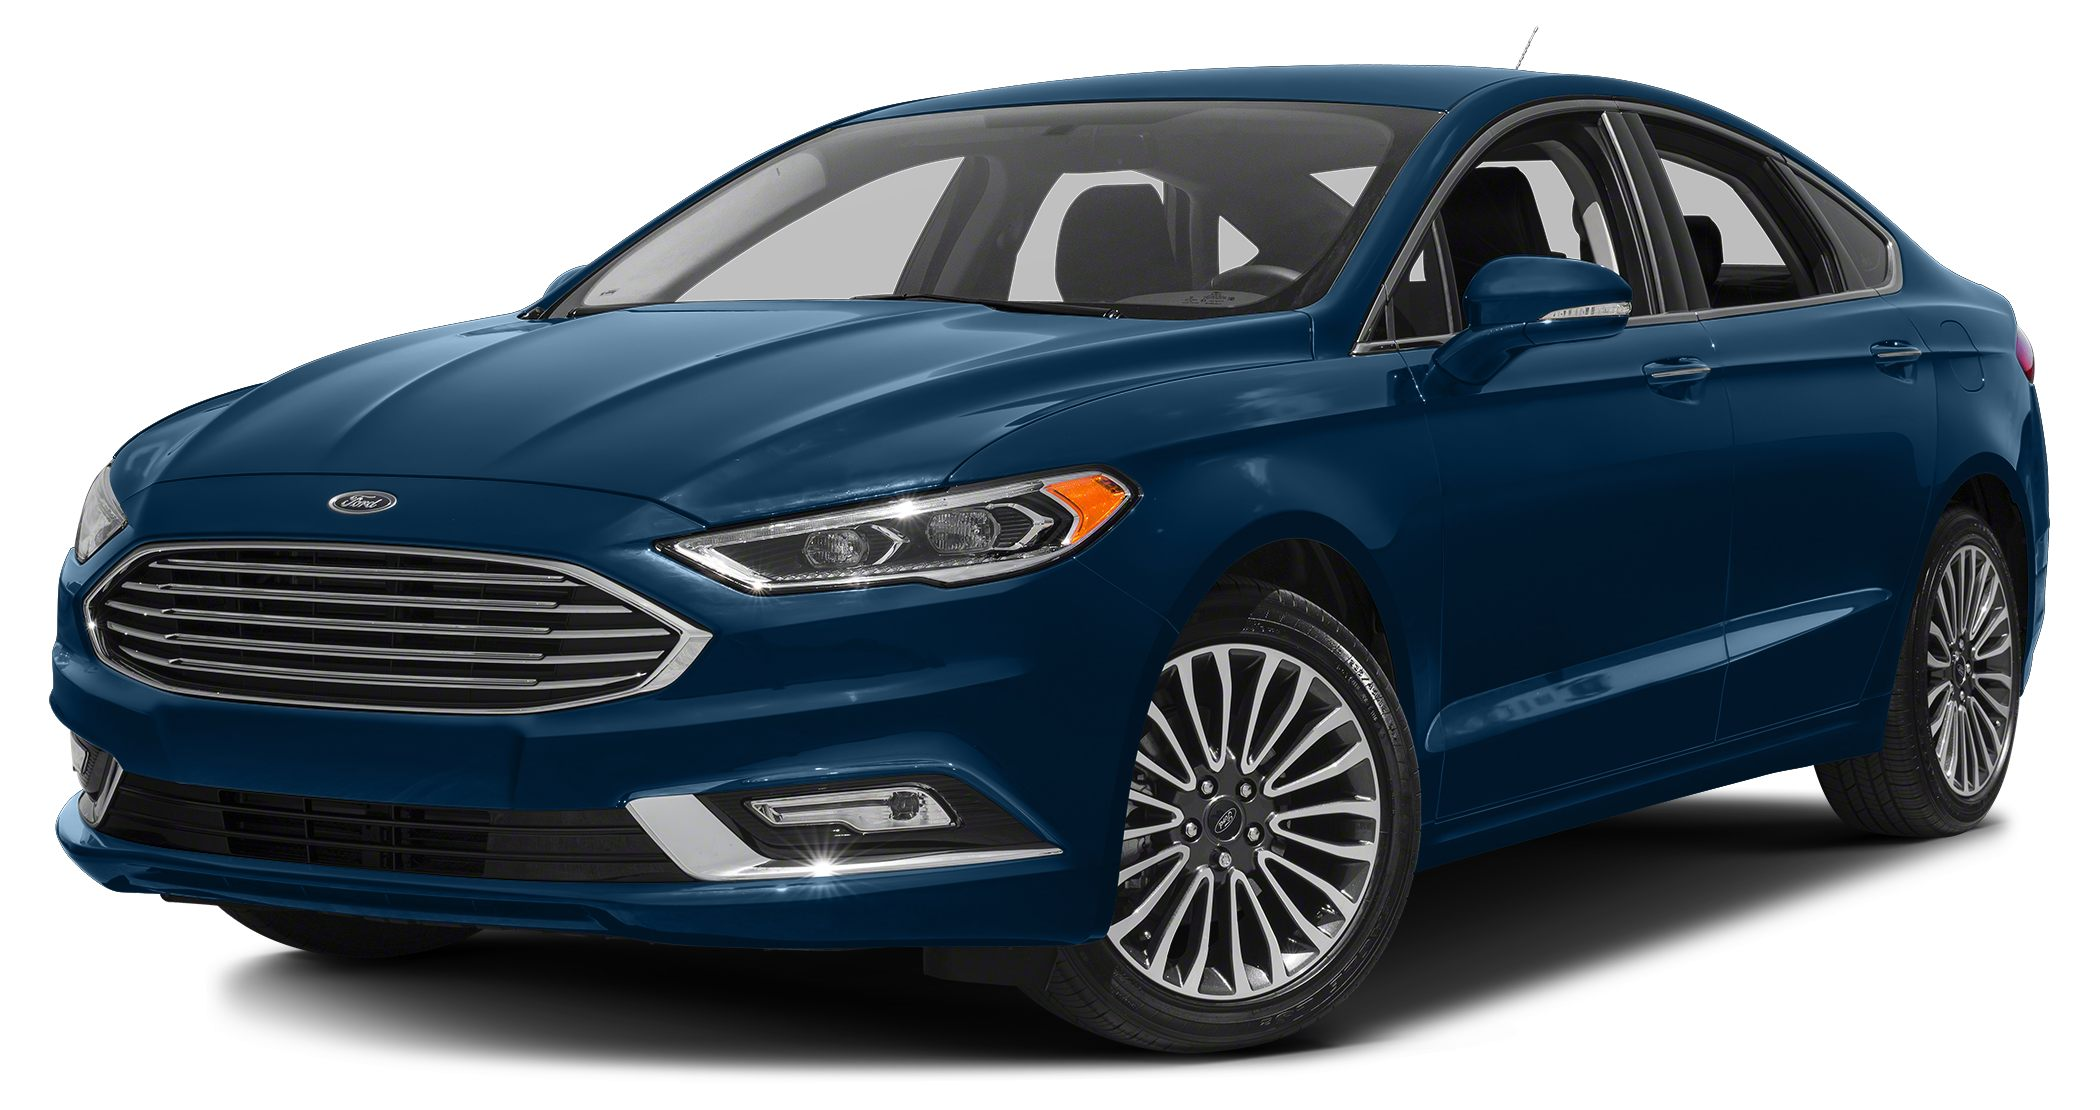 2017 Ford Fusion Titanium The newly designed Ford Fusion is more stunning than ever New to the 20